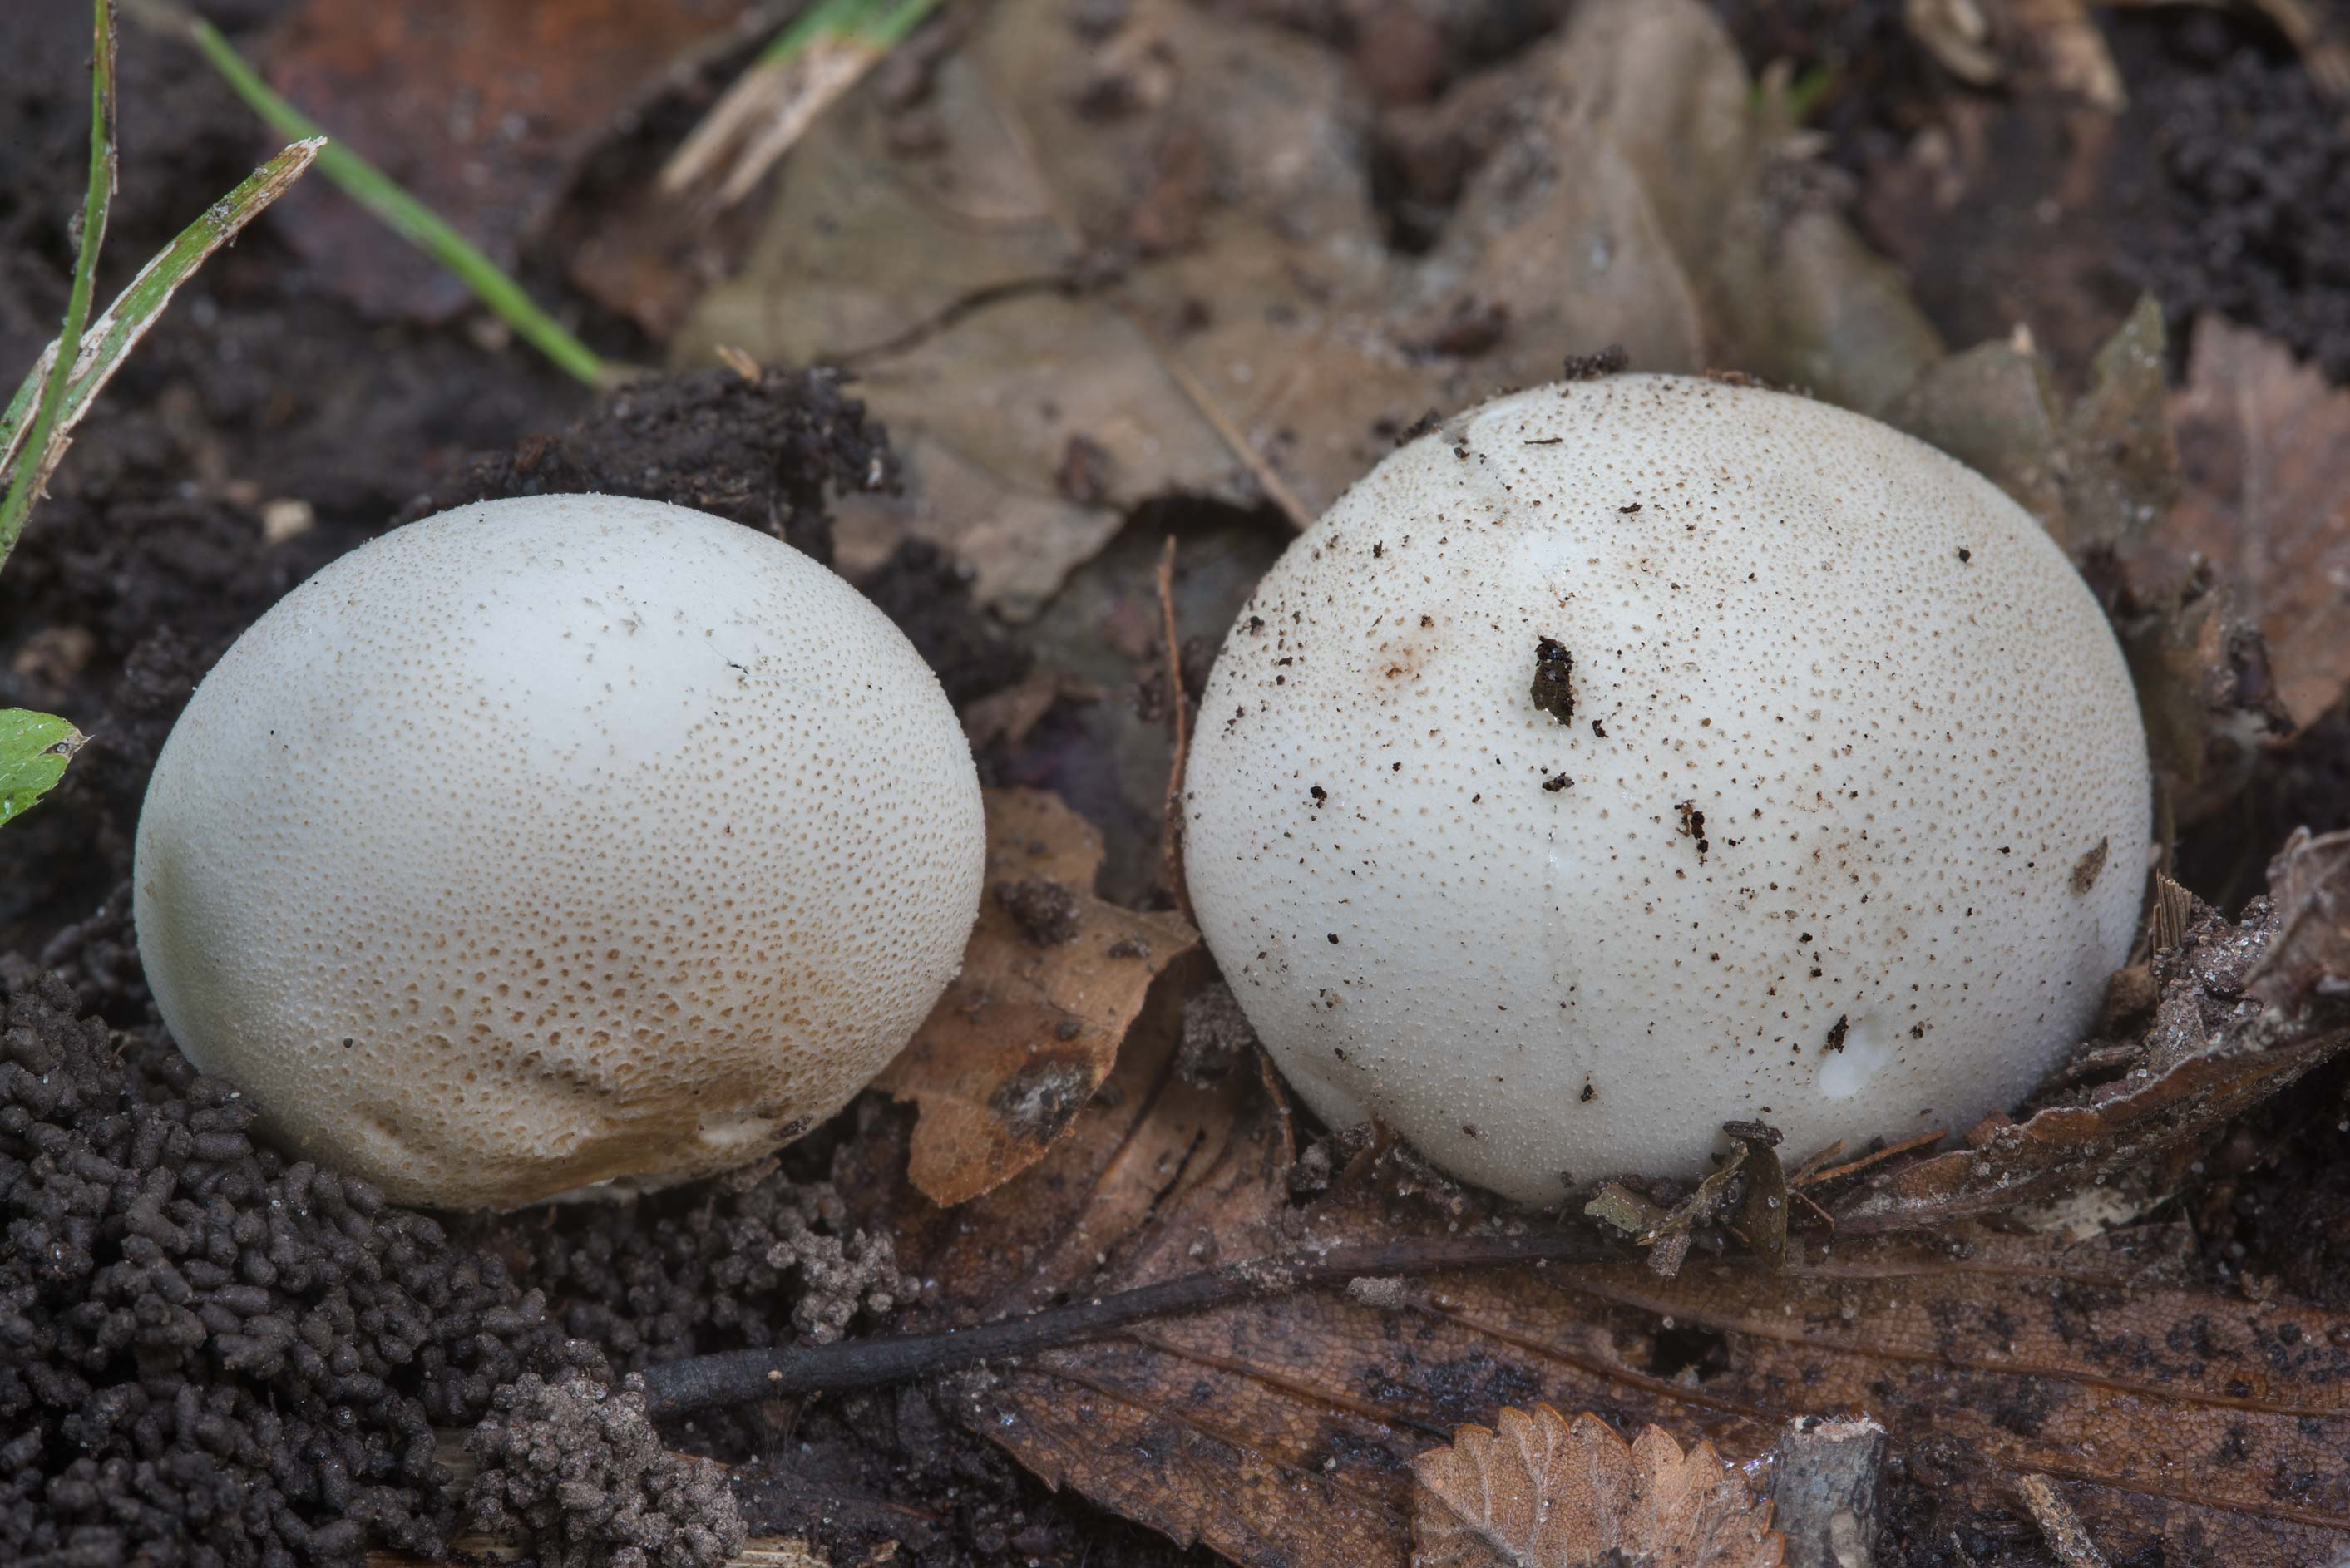 Puffball (Lycoperdon ) mushrooms on a trail in Bee Creek Park. College Station, Texas